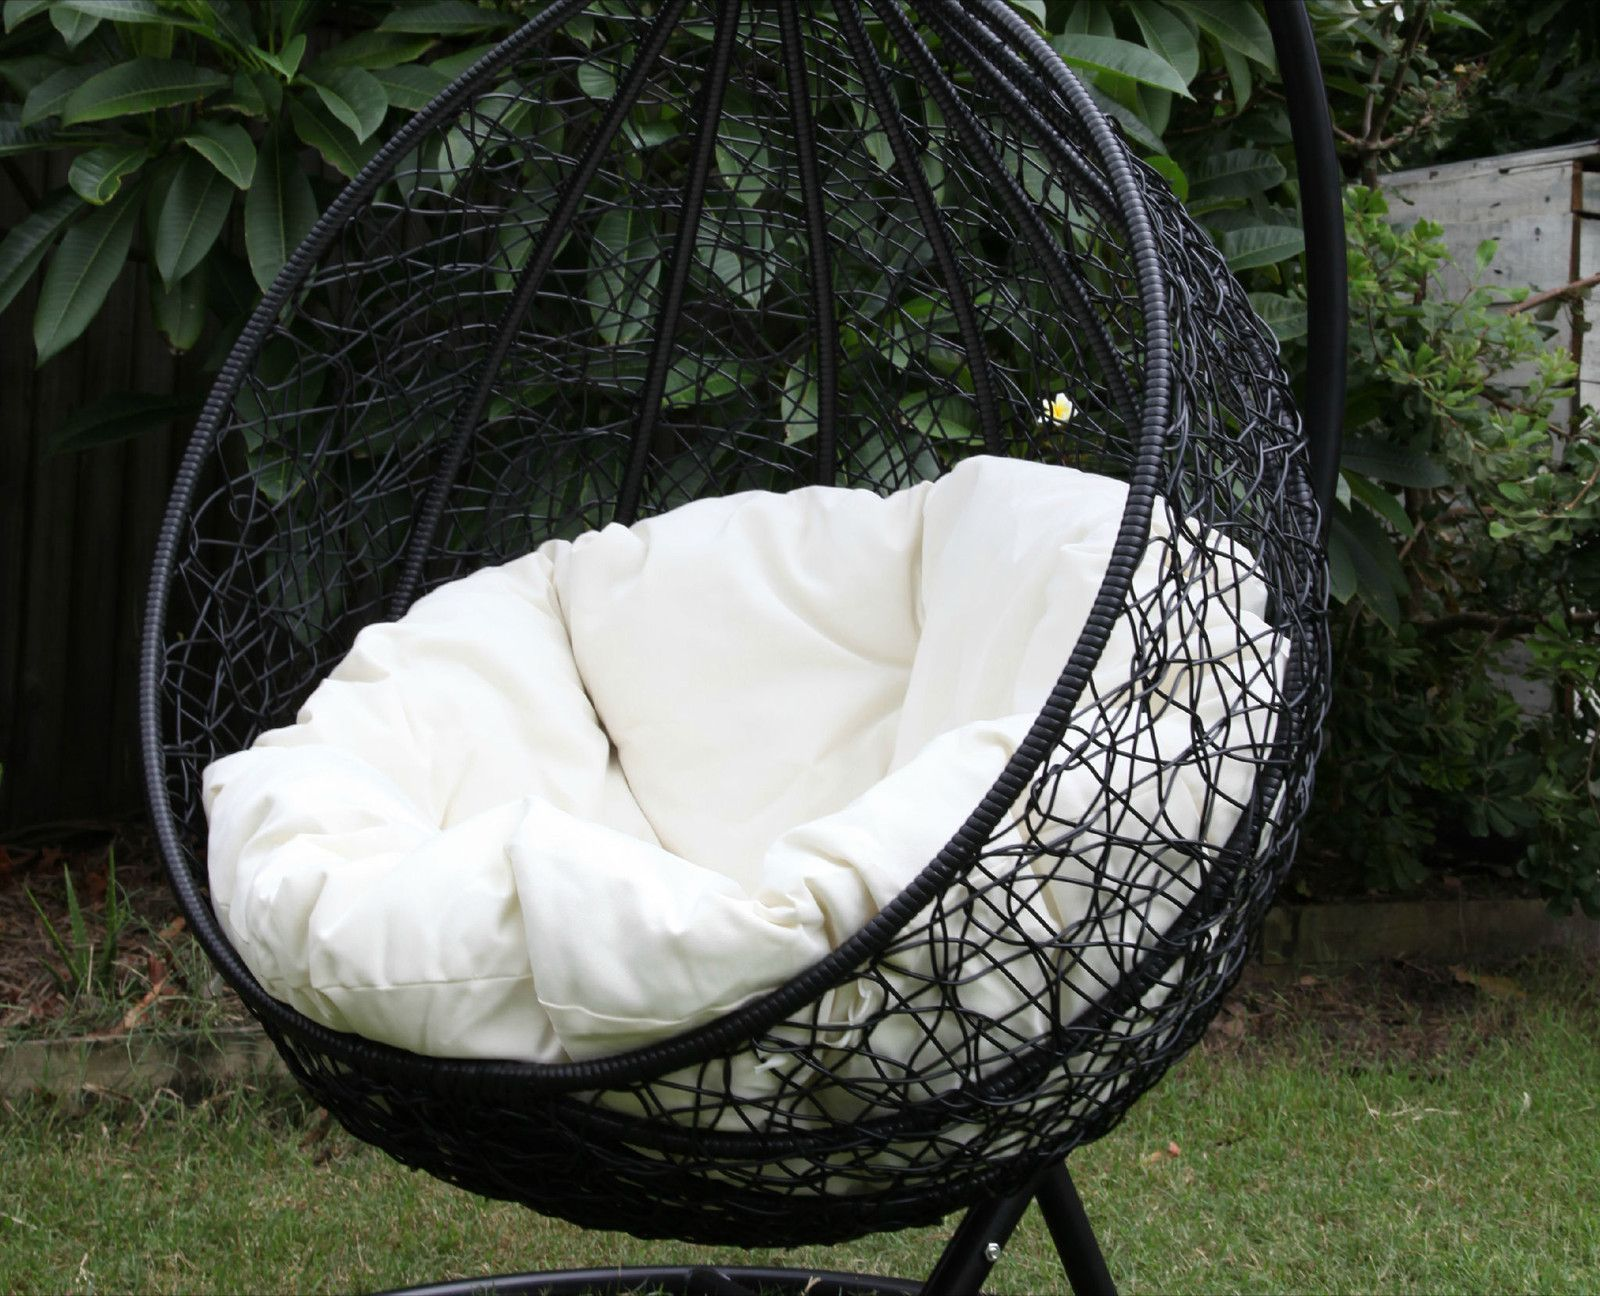 Egg Chair Indoor Skycarte Black Hanging Egg Chair With White Plush Cushion